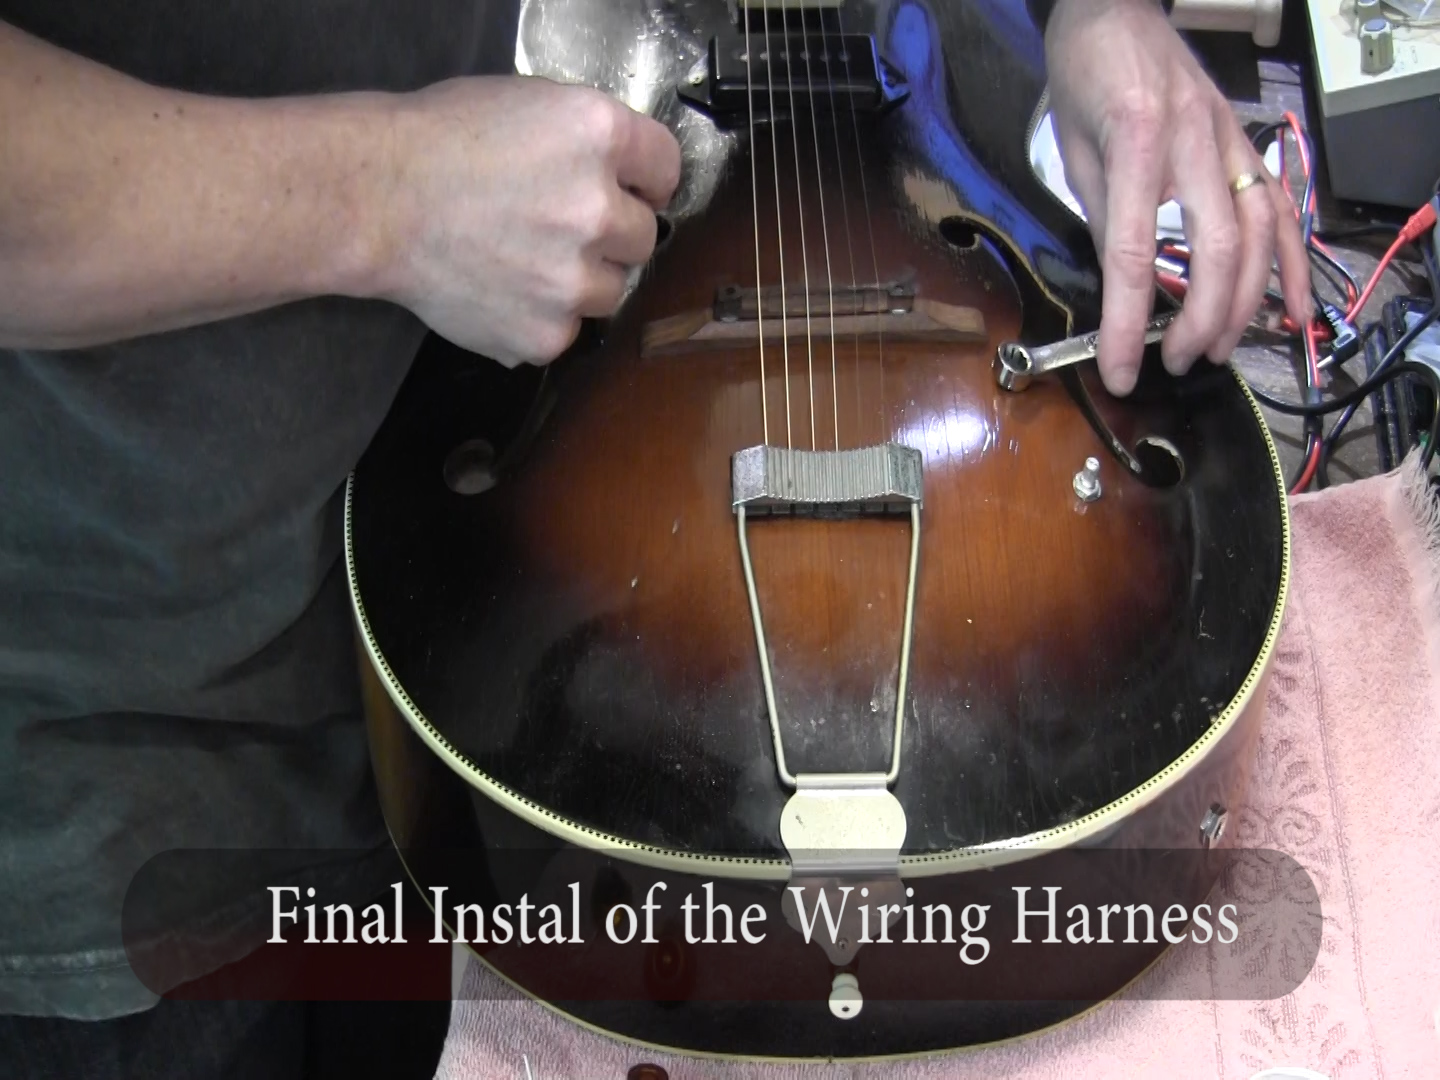 Install pickup in vintage kay silvertone arline archtop f-hole